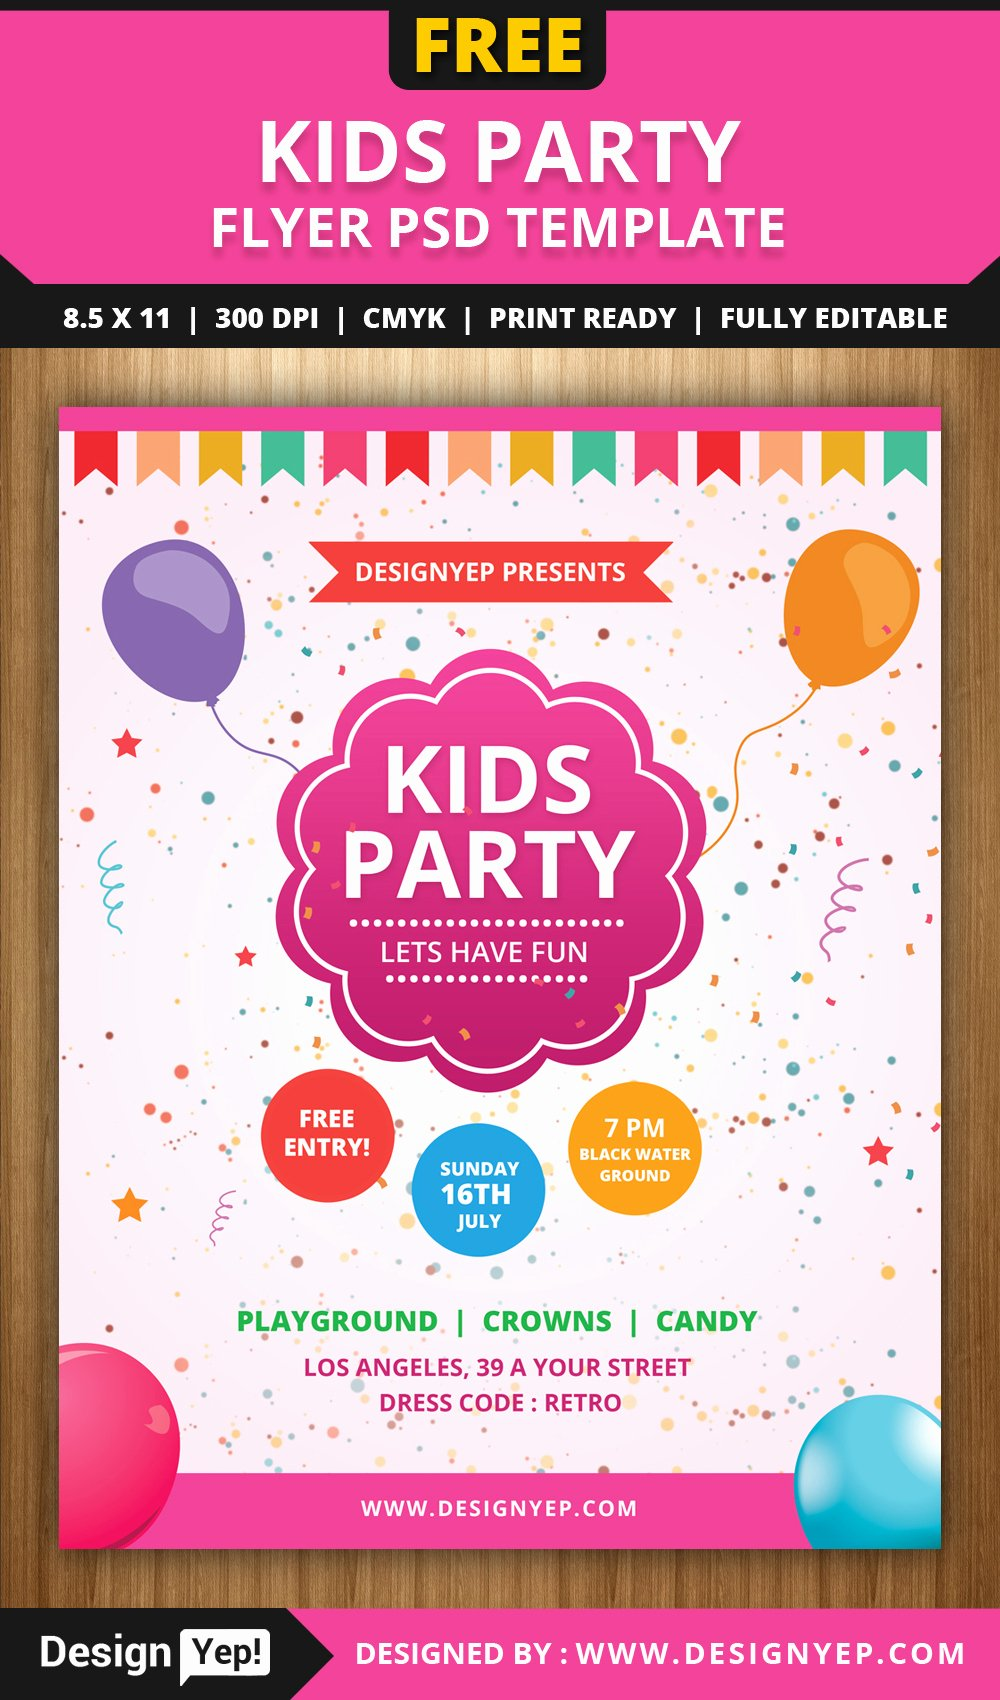 Free Flyers Templates Downloads Best Of Free Kids Party Flyer Psd Template Designyep